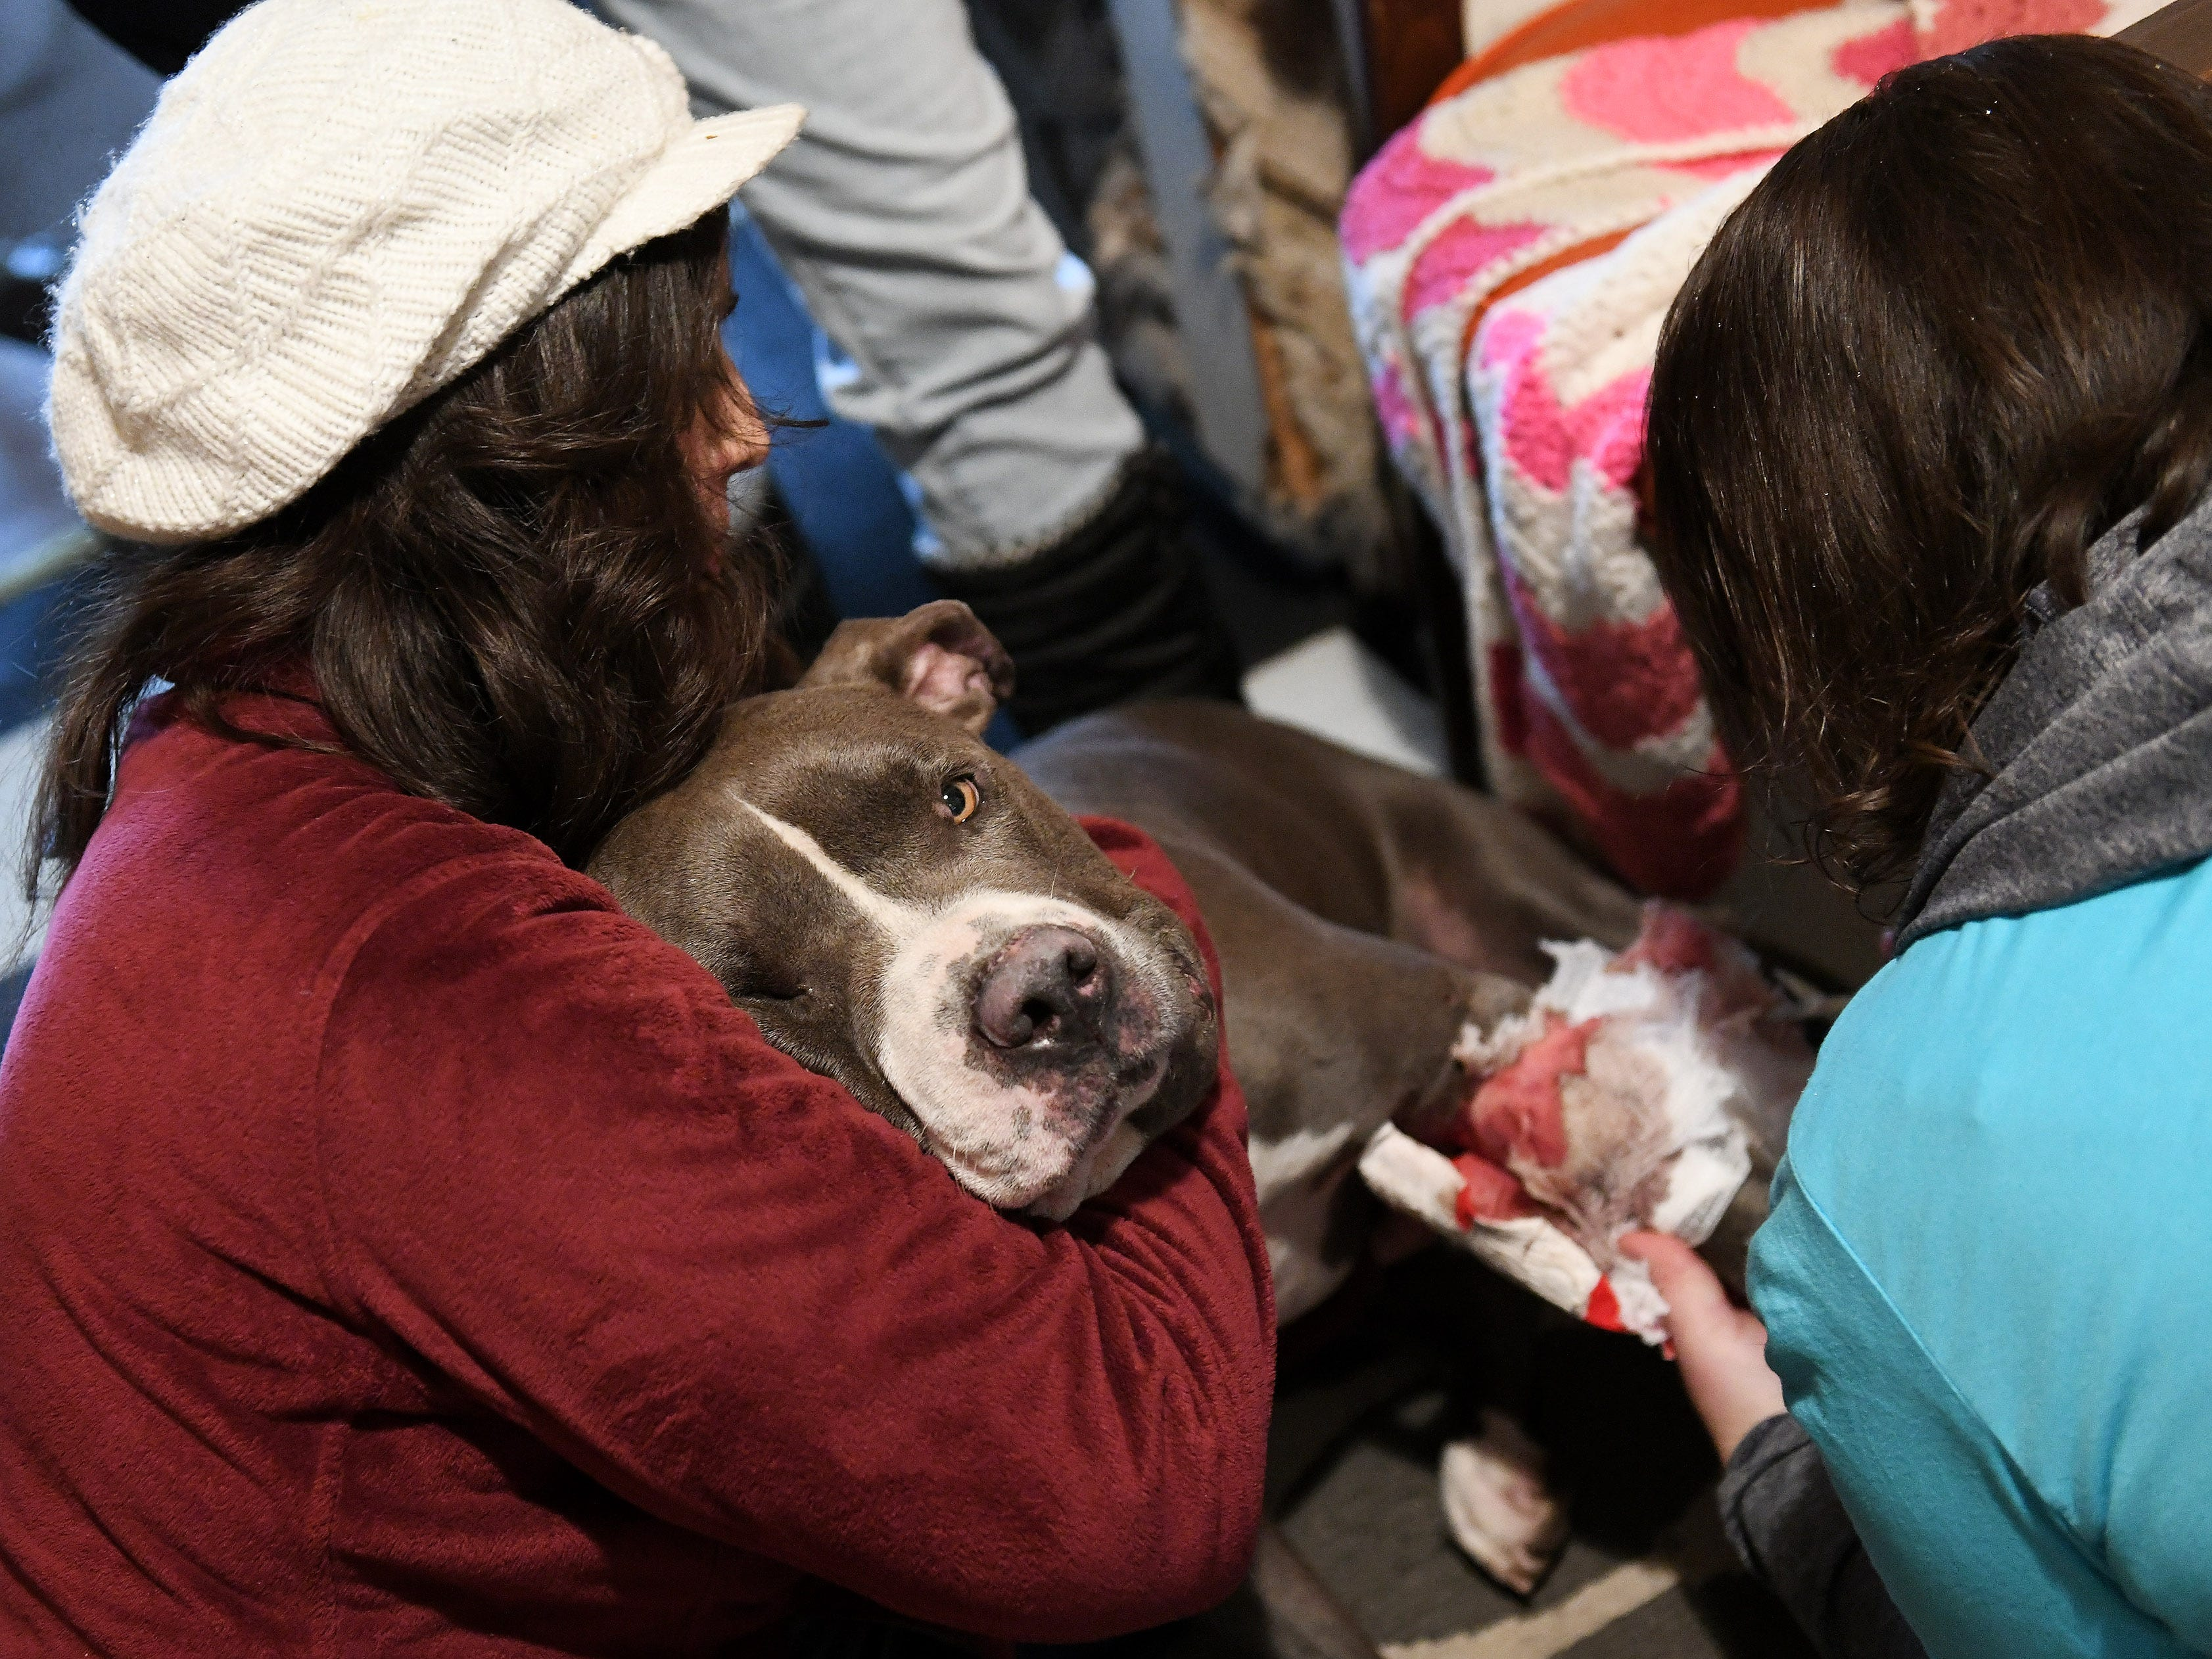 As part of the outreach of the Animal Care Network, volunteers from Banfield Pet Hospital, Elizabeth Vega, left, comforts King, a pit bull, while Kelly Abate changes his bandages at his home in Pontiac on Nov. 18, 2018.